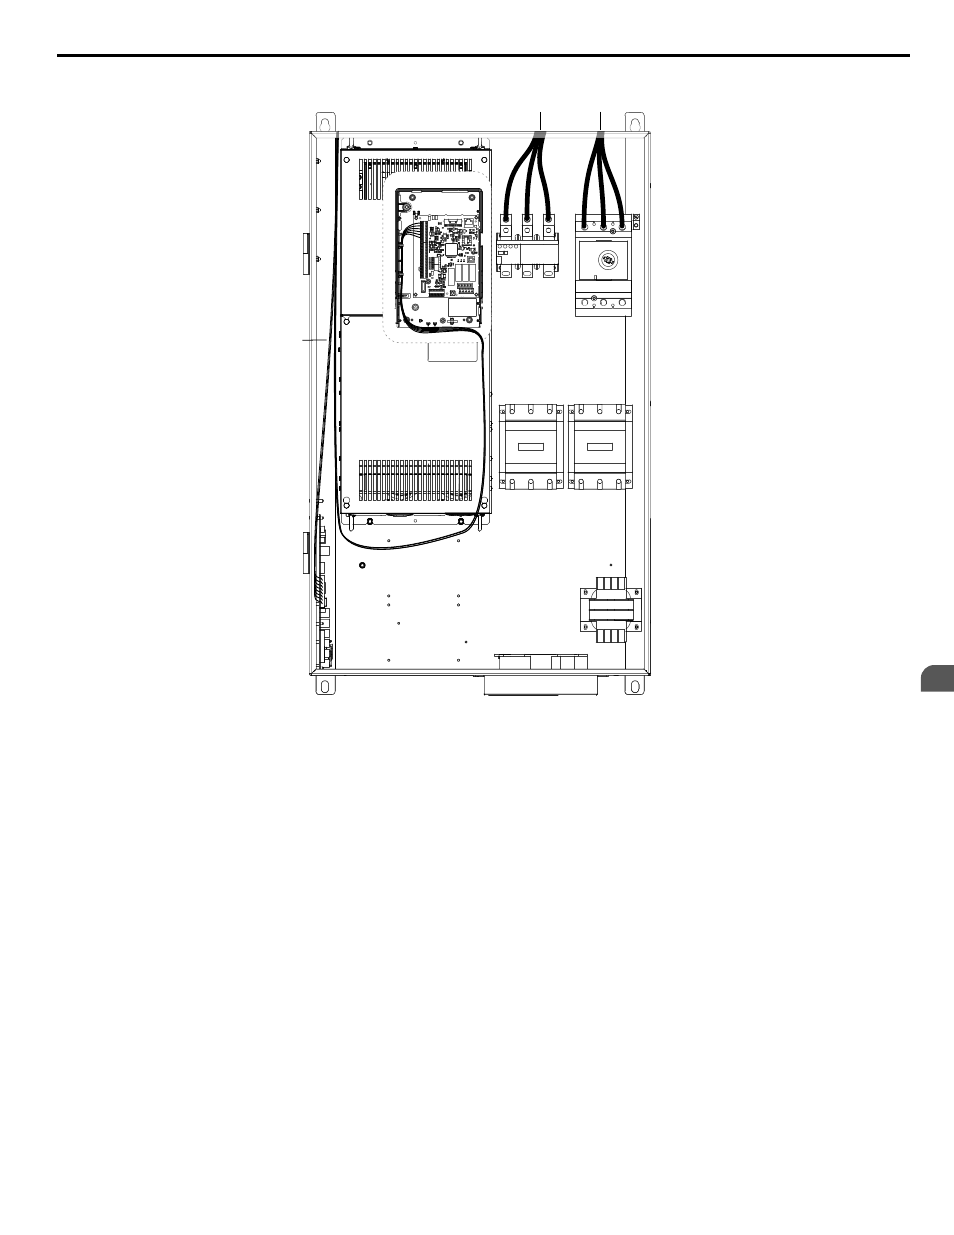 Yaskawa Z1000 Wiring Diagram Explained Diagrams Zx600 Ac Drive Bypass Technical Manual User Page 69